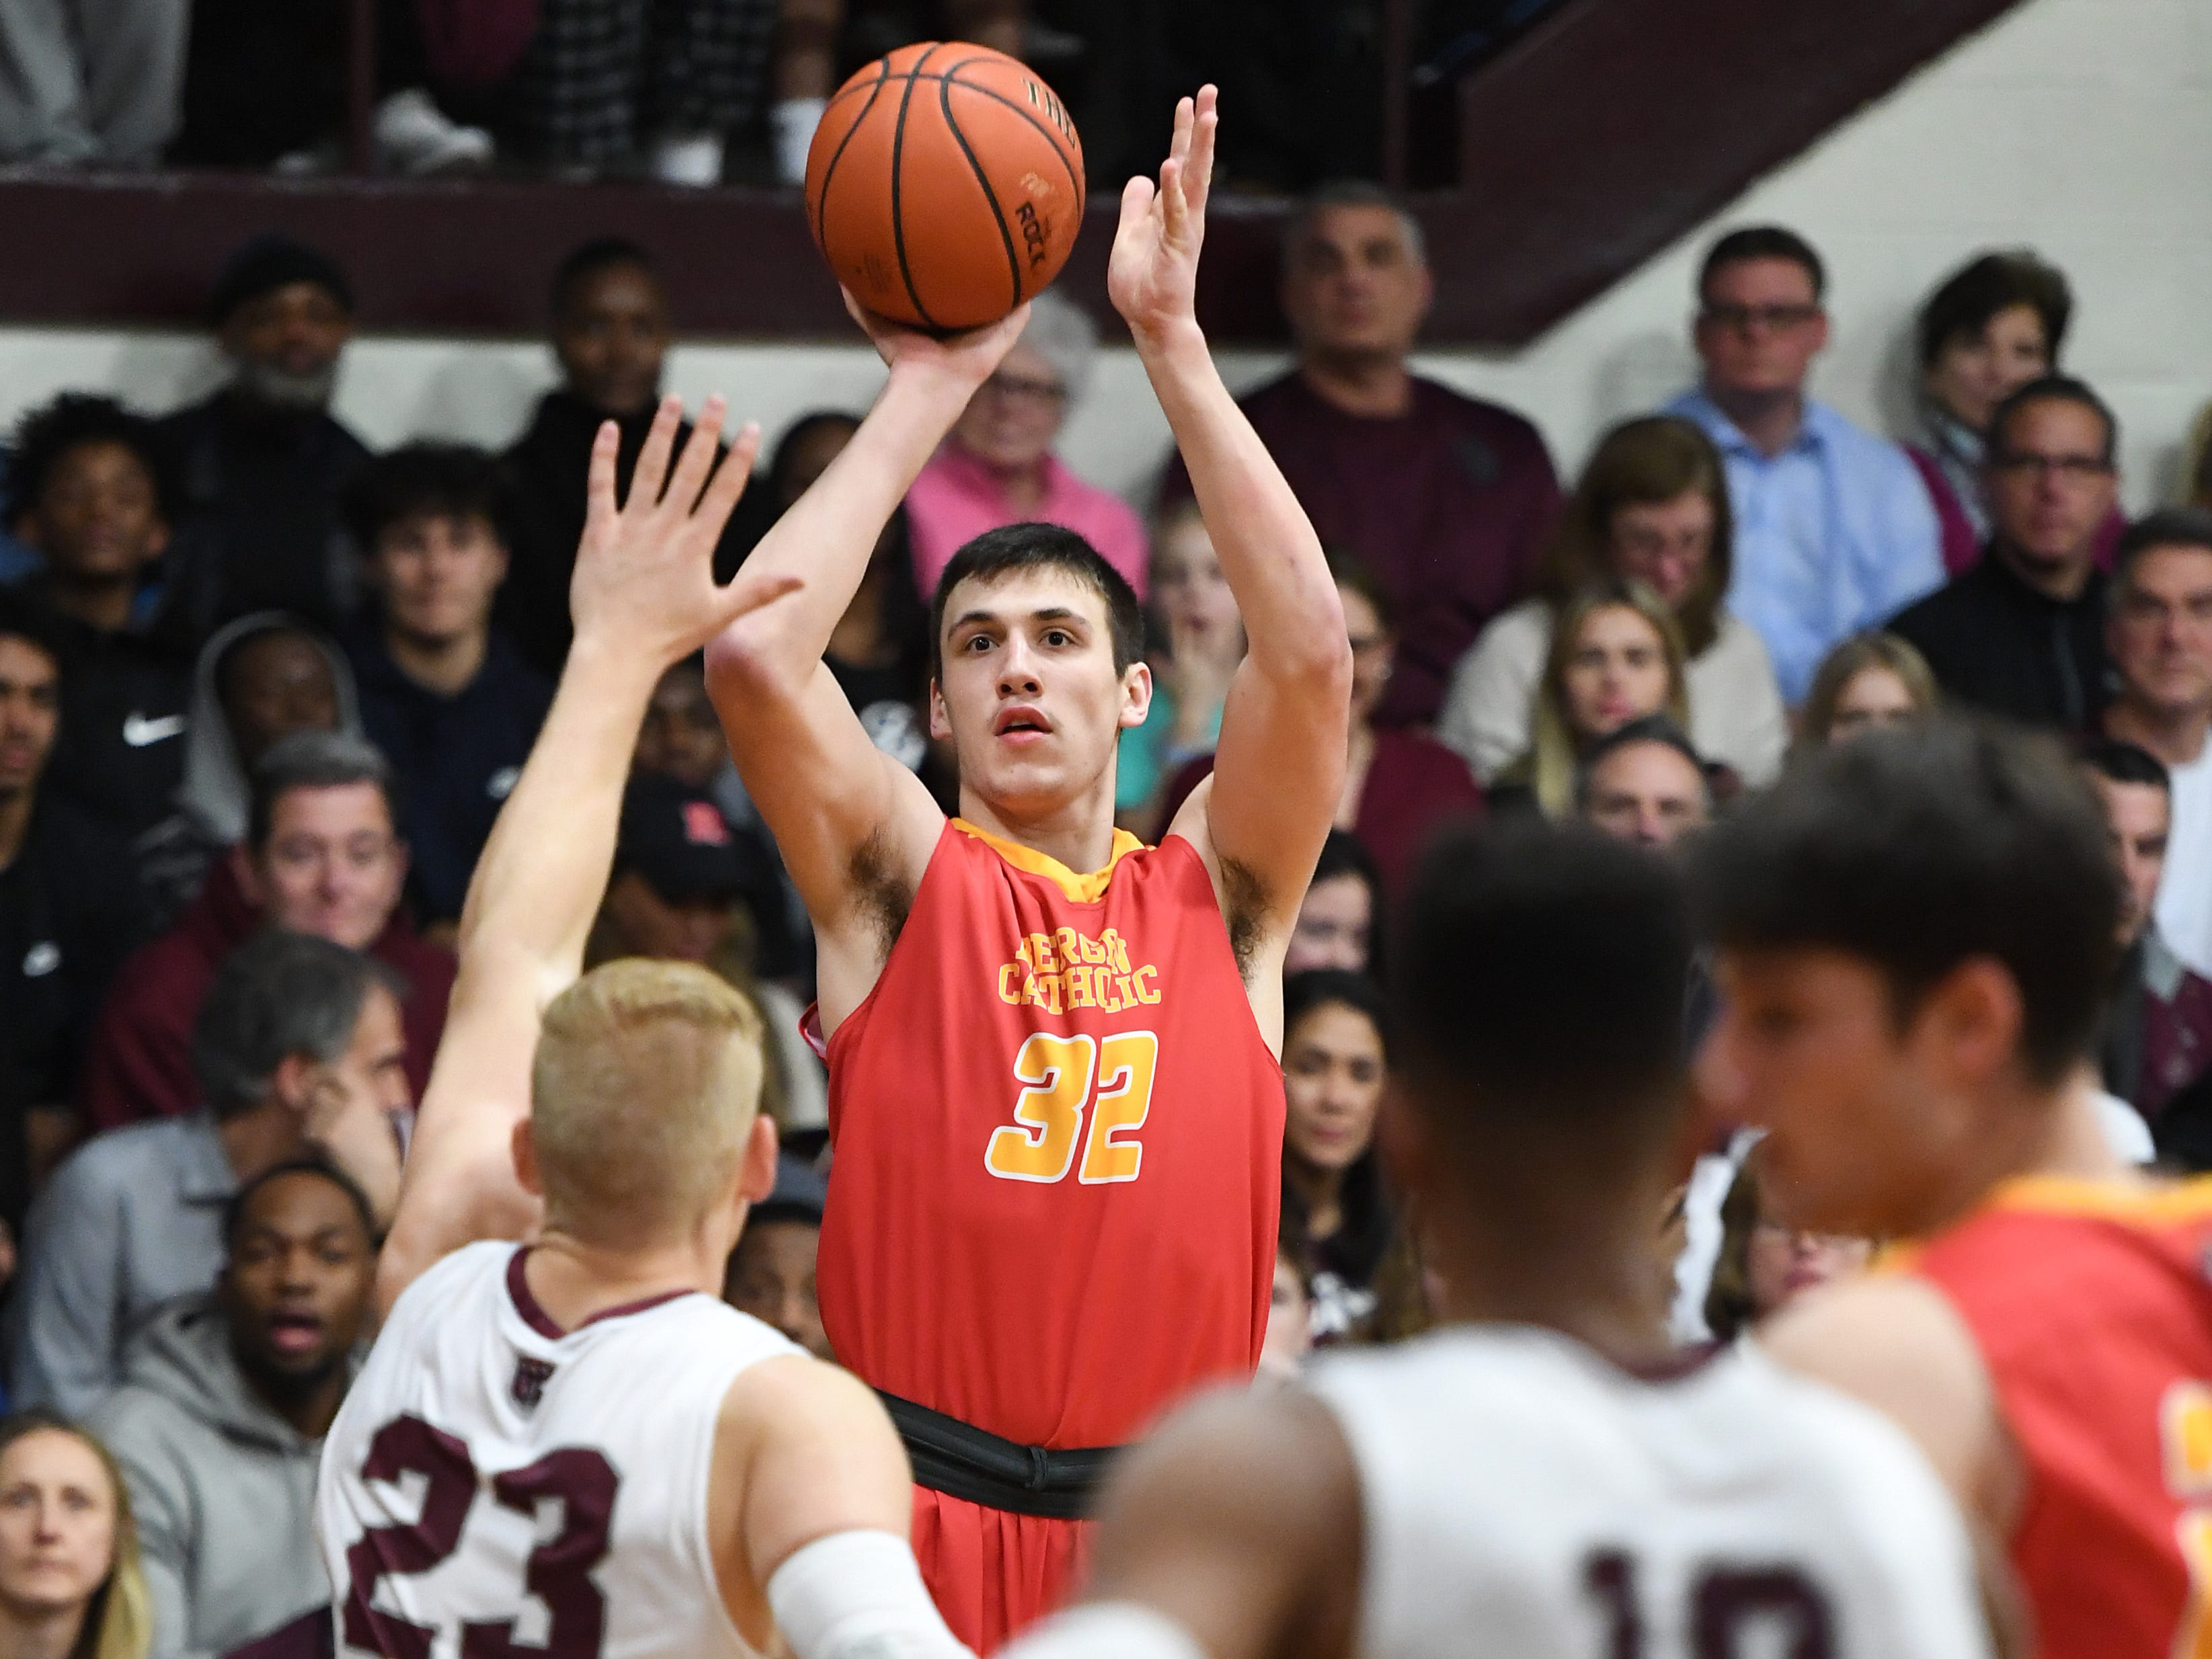 Bergen Catholic basketball at Don Bosco in Ramsey on Thursday, January 17, 2019. BC #32 Zach Freemantle takes a shot.